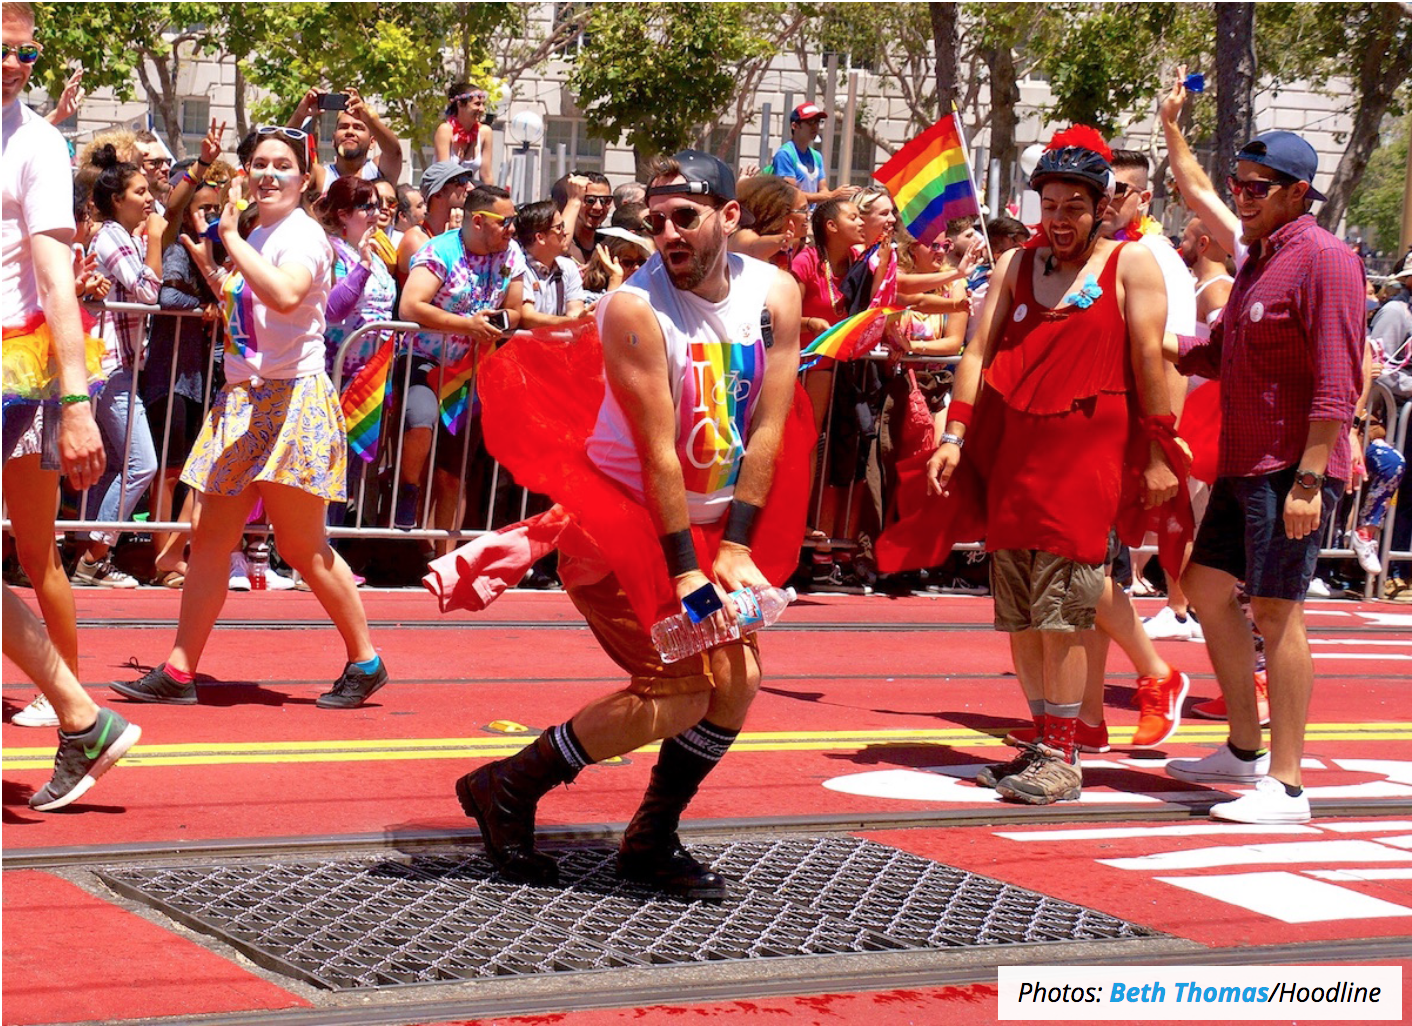 People dancing in colorful apparel at SF Pride celebration